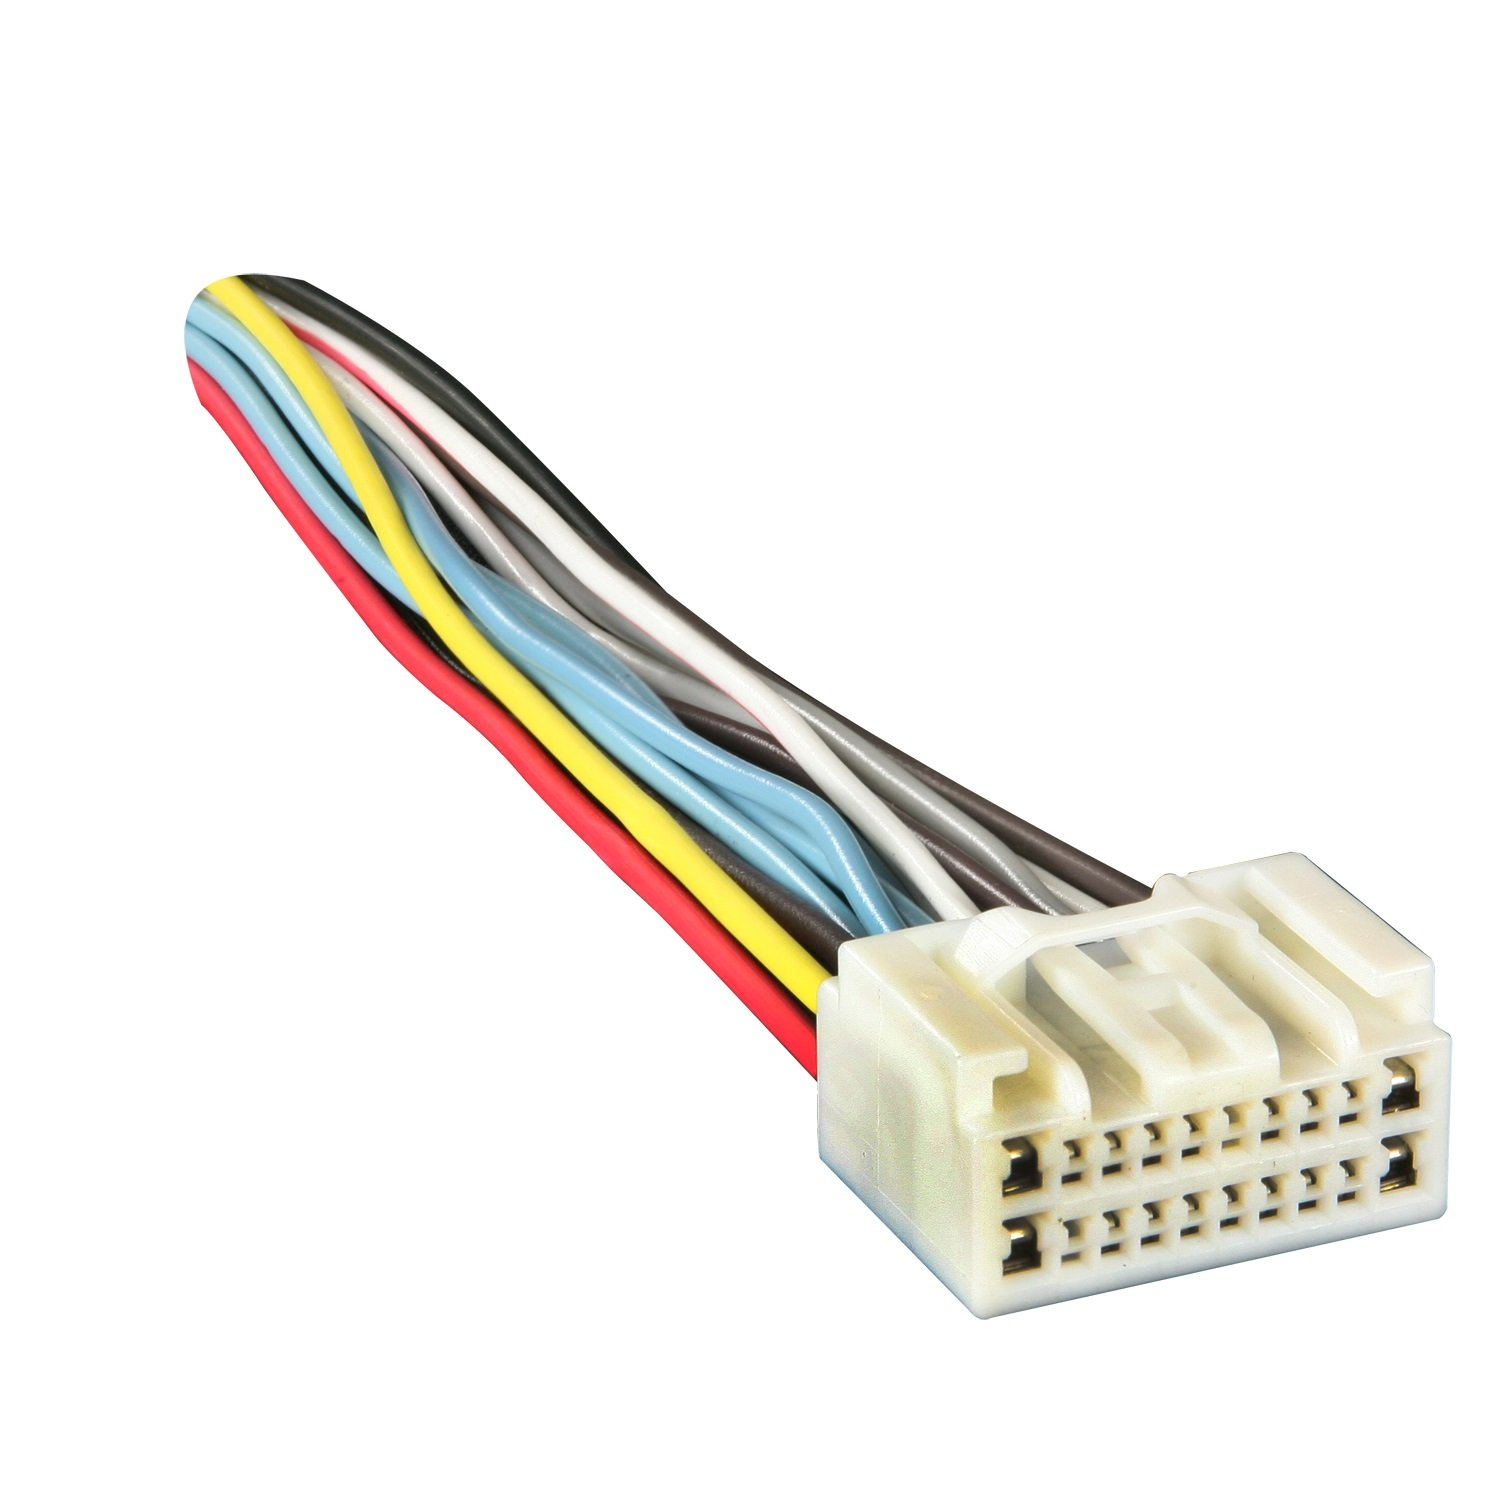 61k6eVpKLJL._SL1500_ amazon com metra 71 8113 reverse wiring harness for select 2000 where to buy a trailer wiring harness at bayanpartner.co